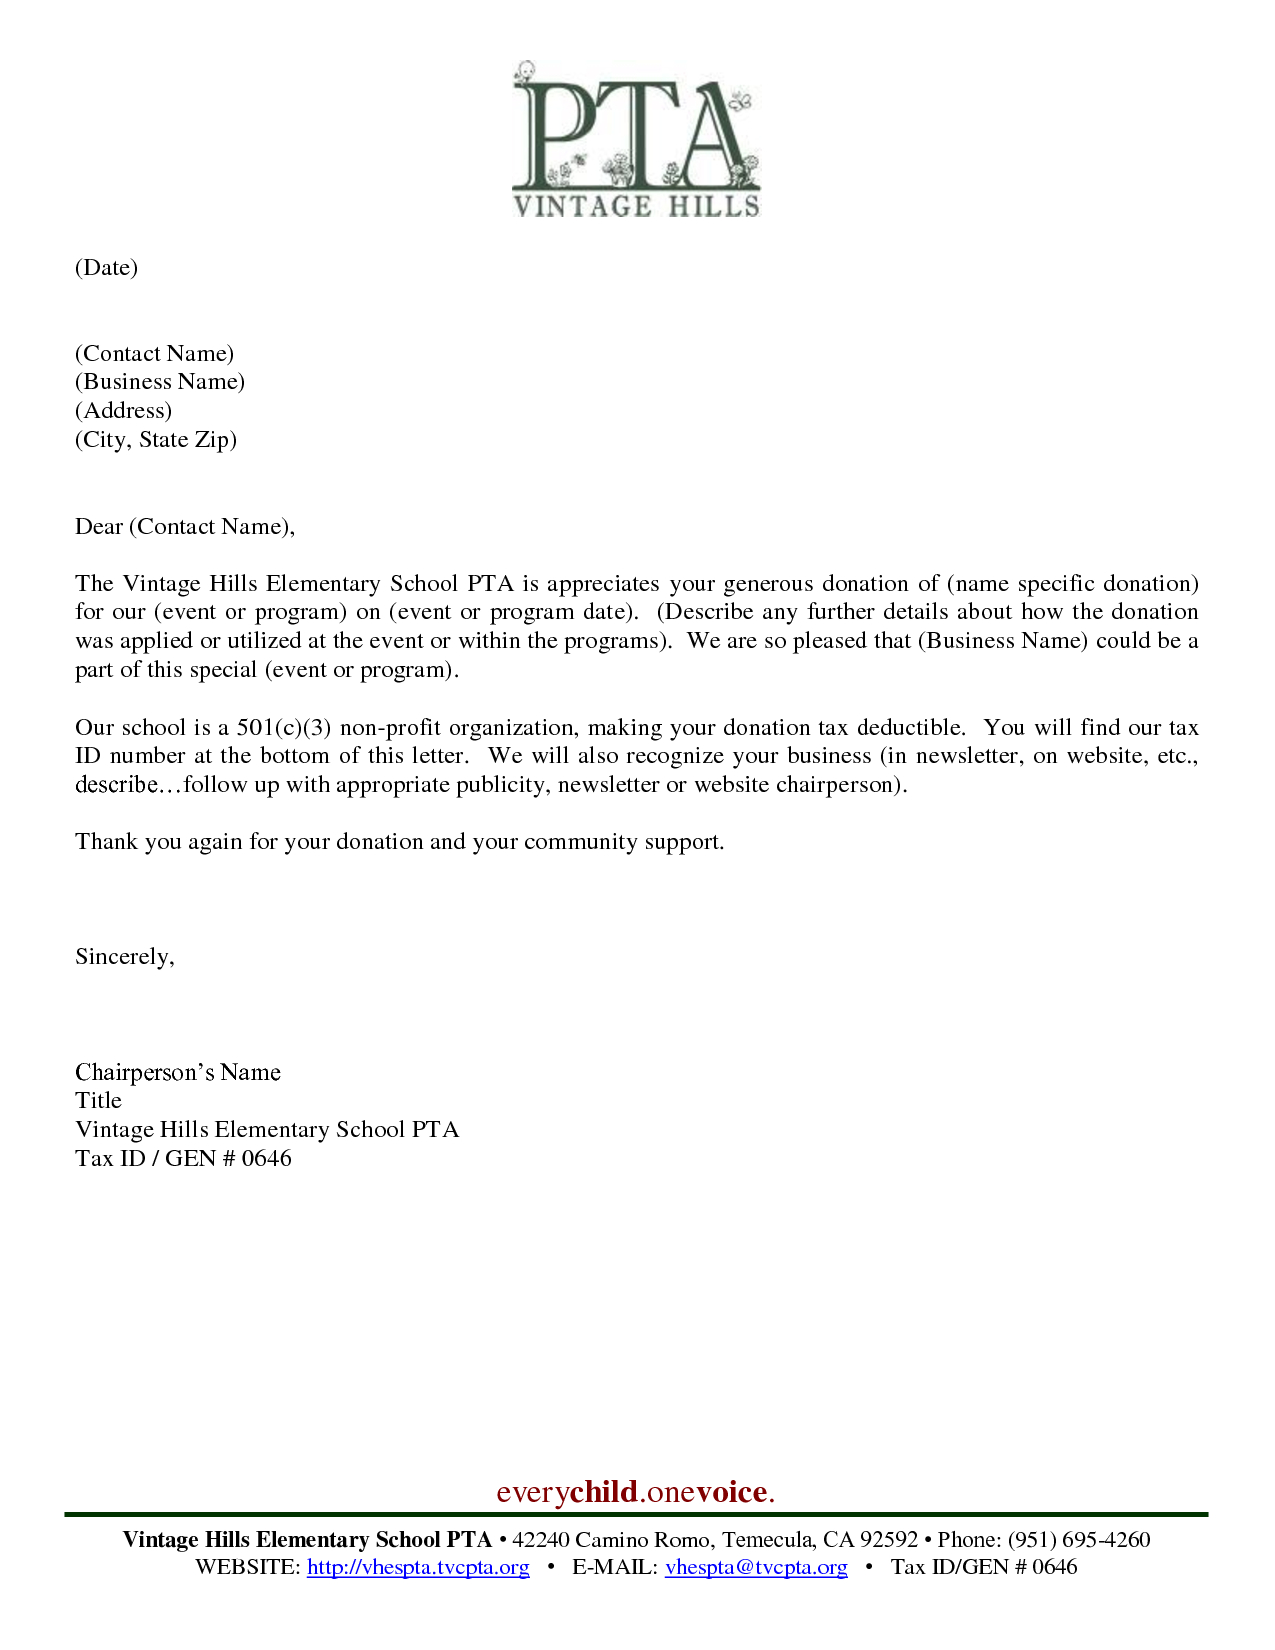 Template Letter Requesting Donations for Fundraiser - Donor Thank You Letter Sample